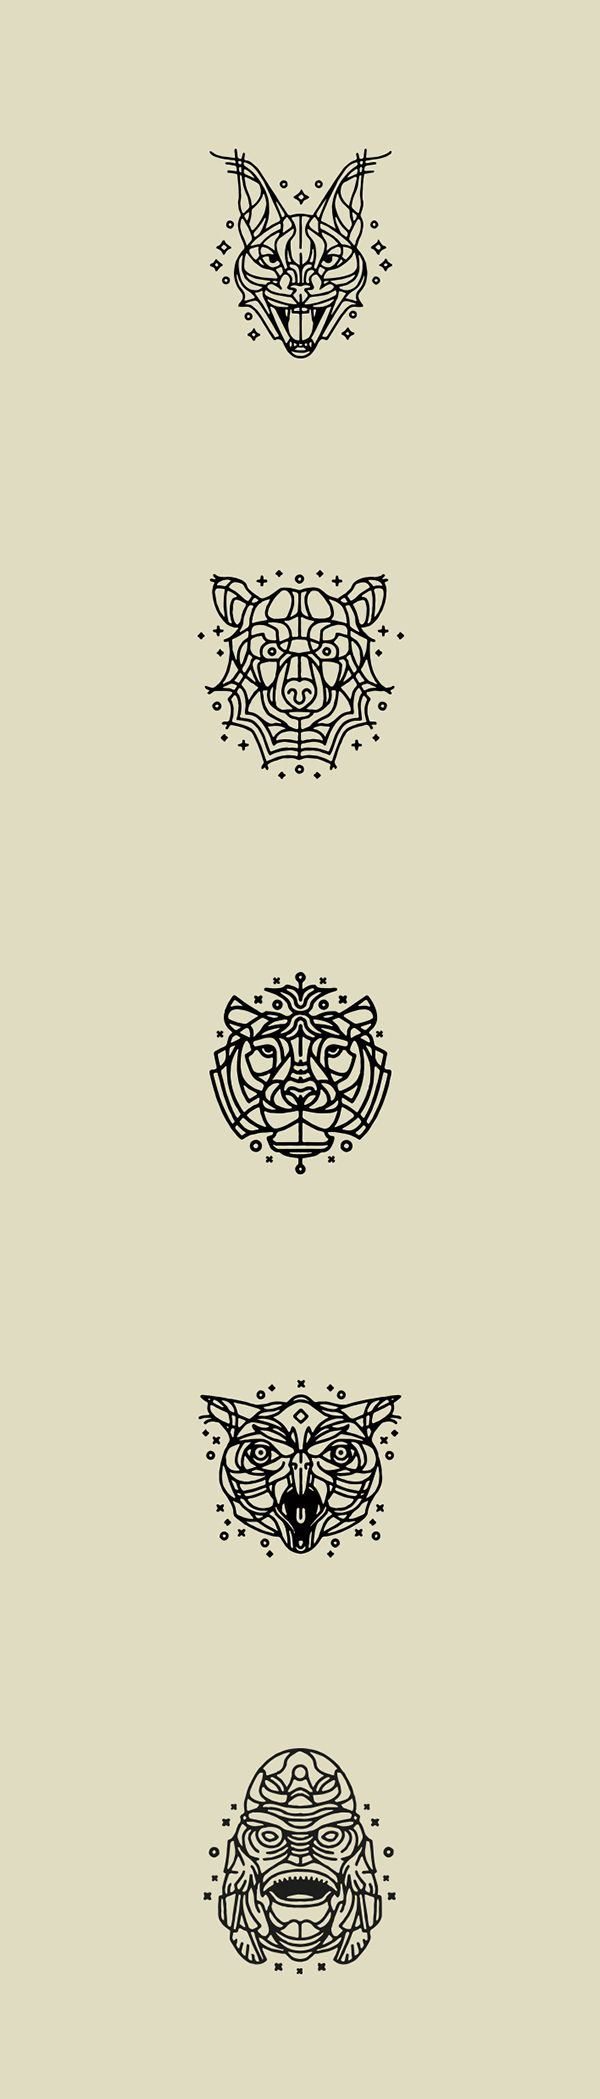 Animal Tattoo's 2 (small compilation) on Behance